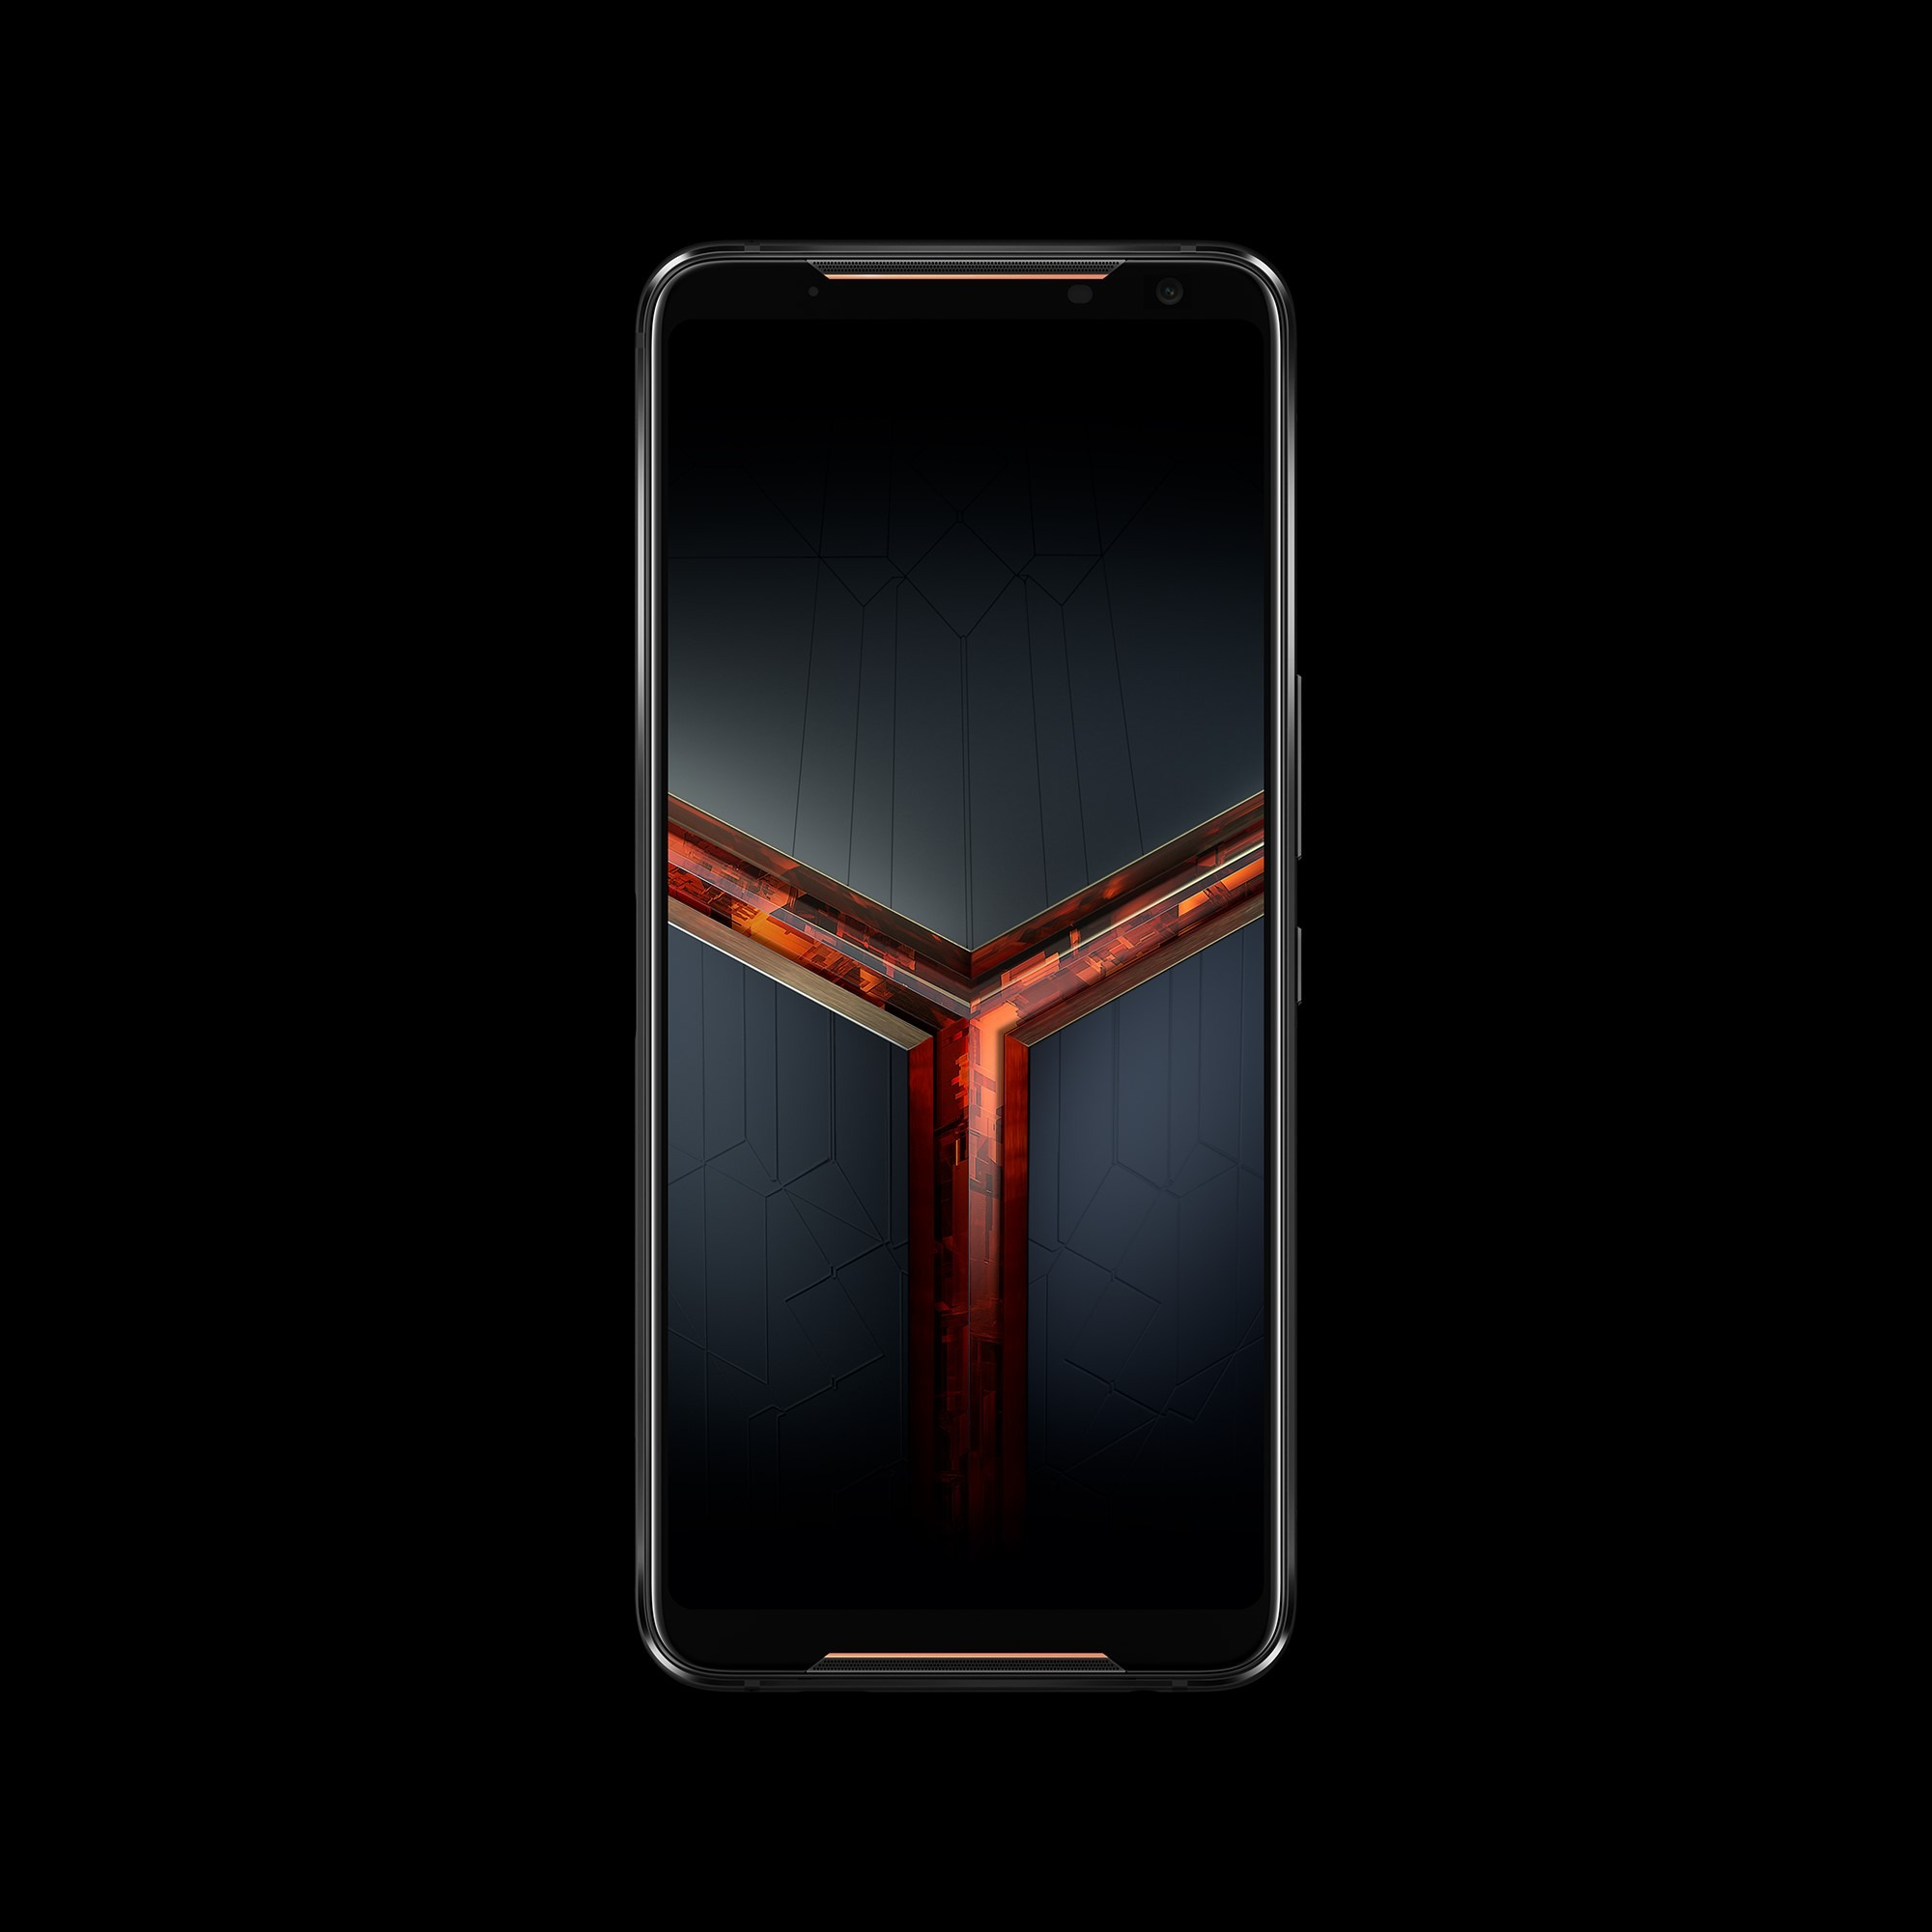 Asus ROG Phone 2 launched in India, price starts at Rs 37,999